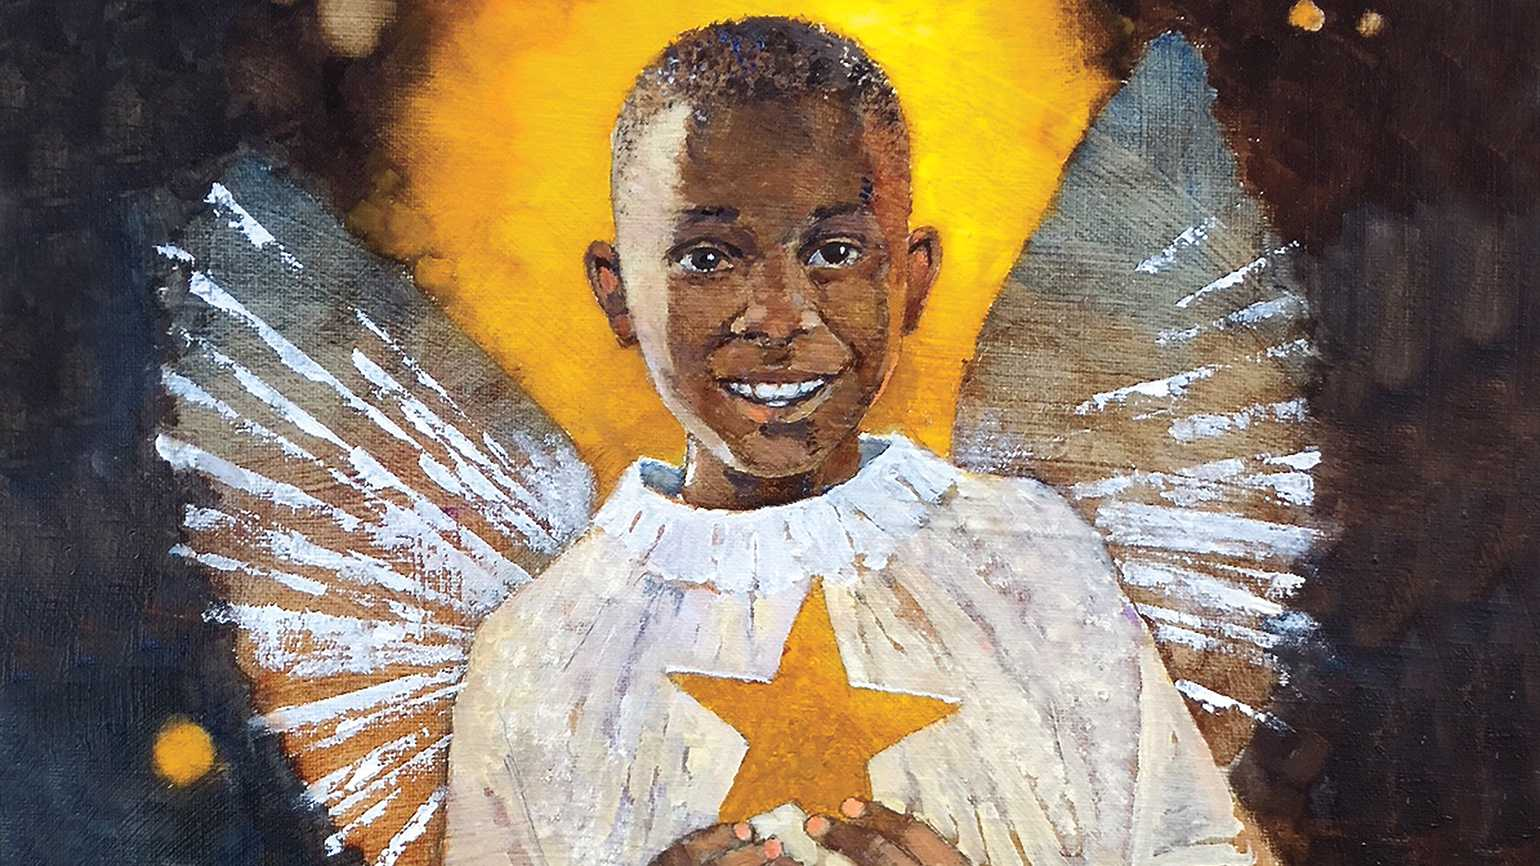 An artist's rendering of a young boy in a angel's costume